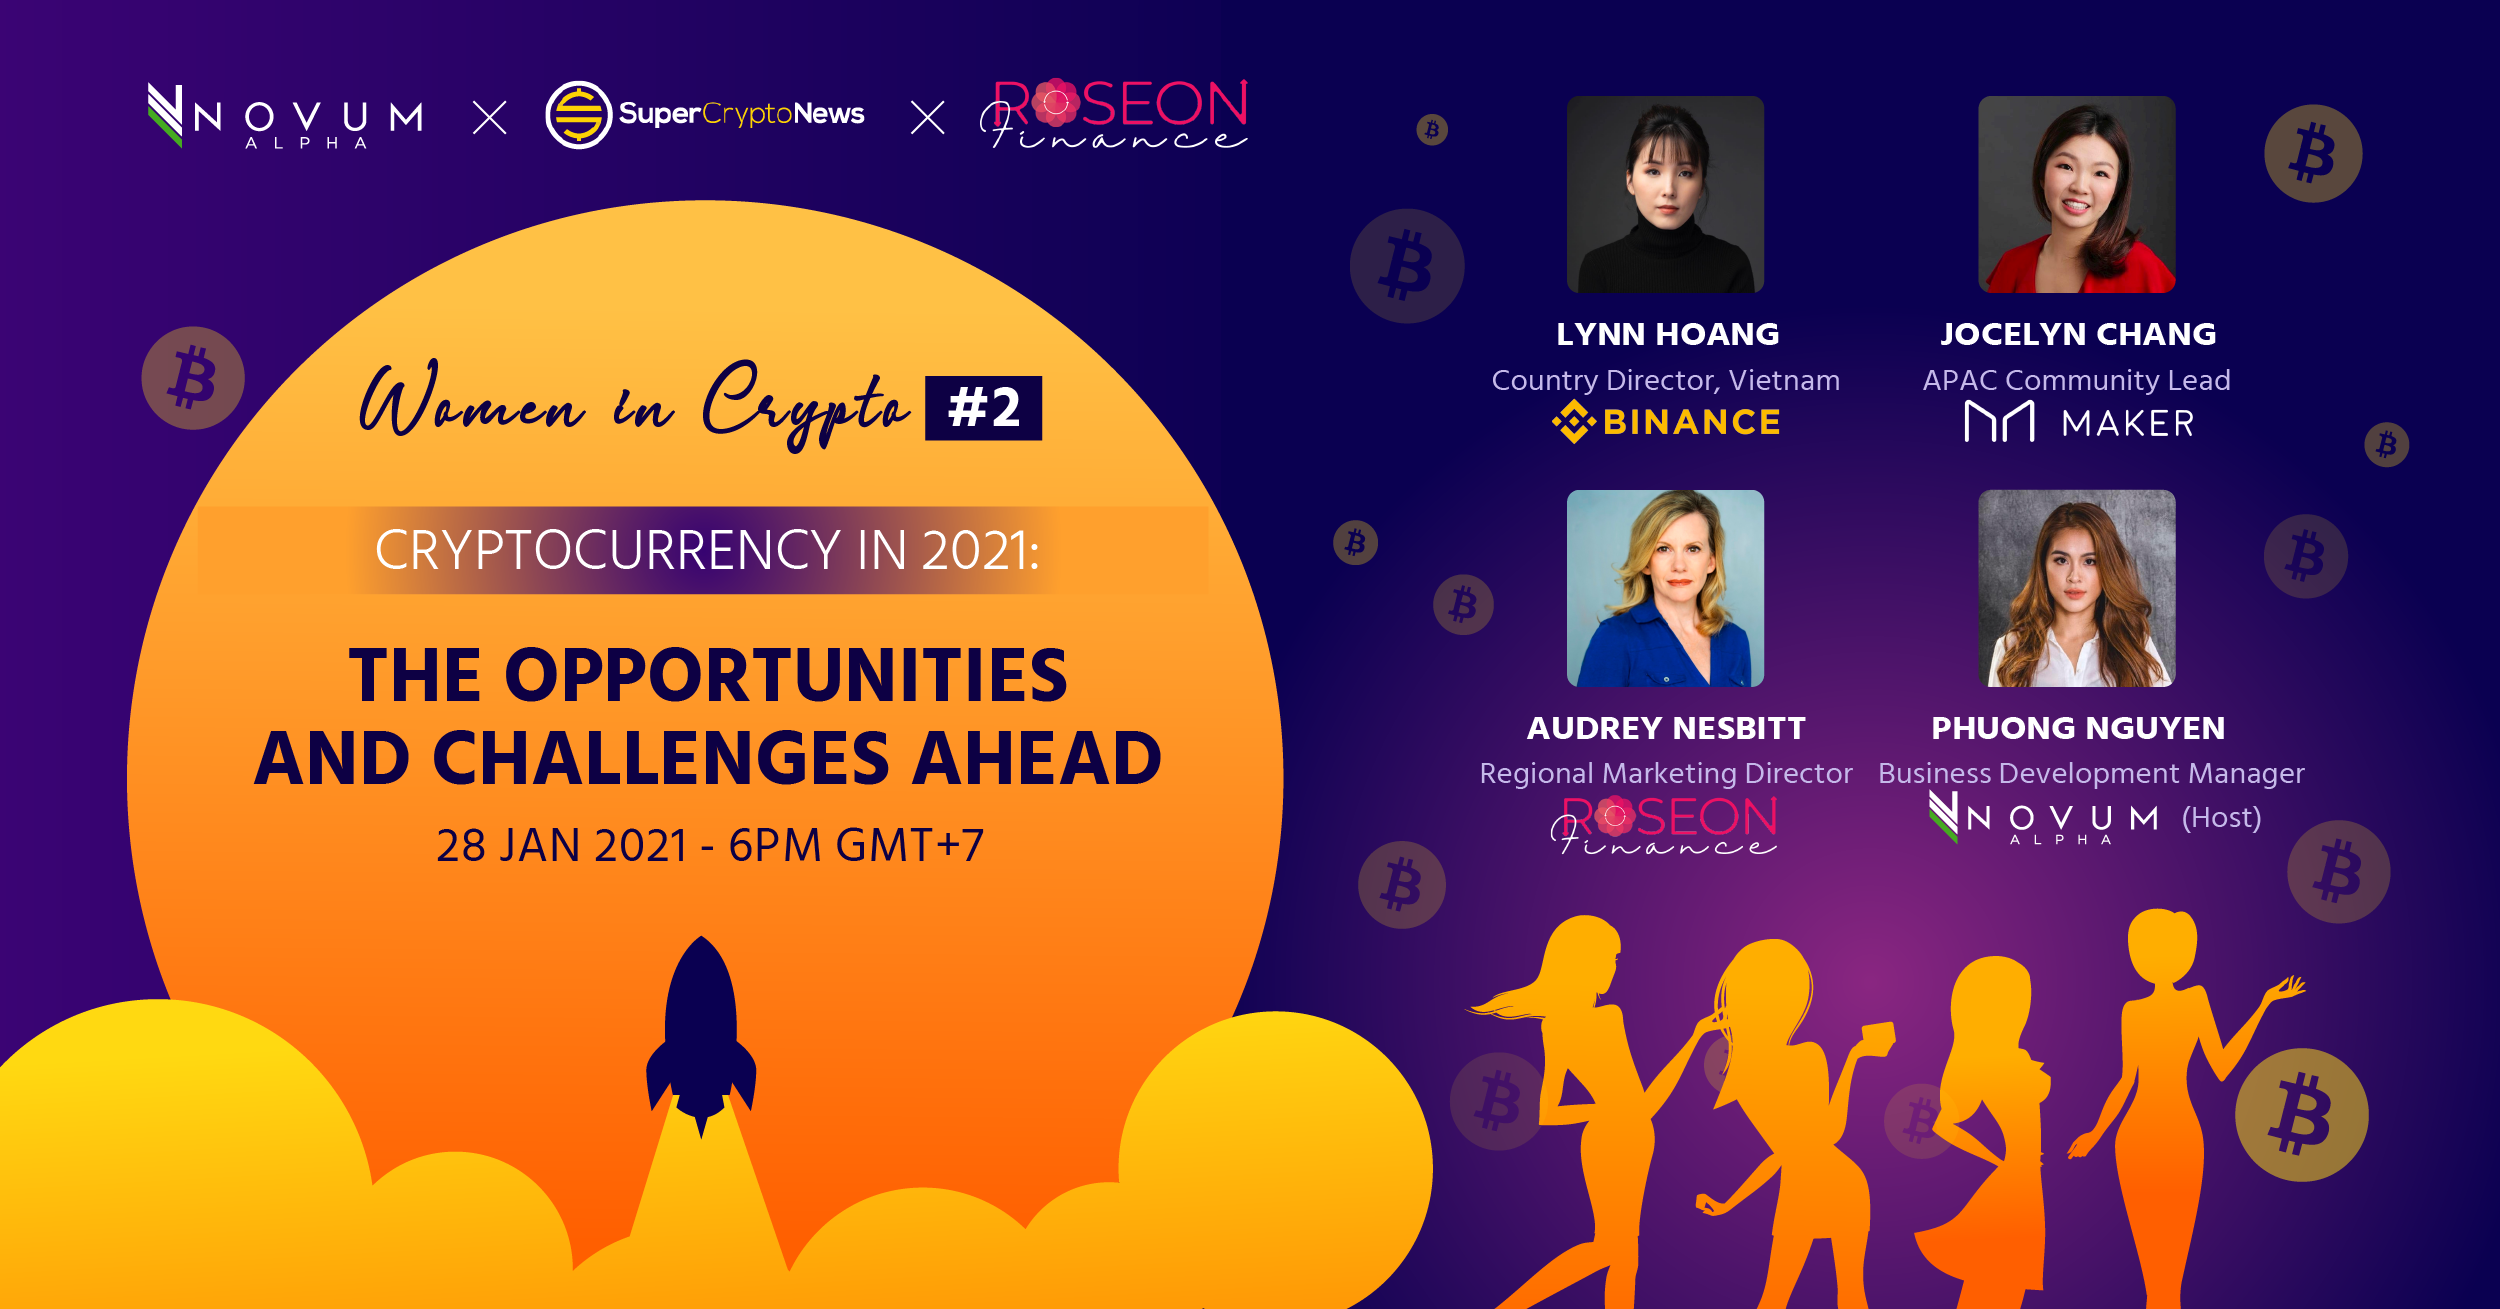 [Talk Series] Woman in Crypto #2: Cryptocurrency in 2021 – Opportunities and Challenges